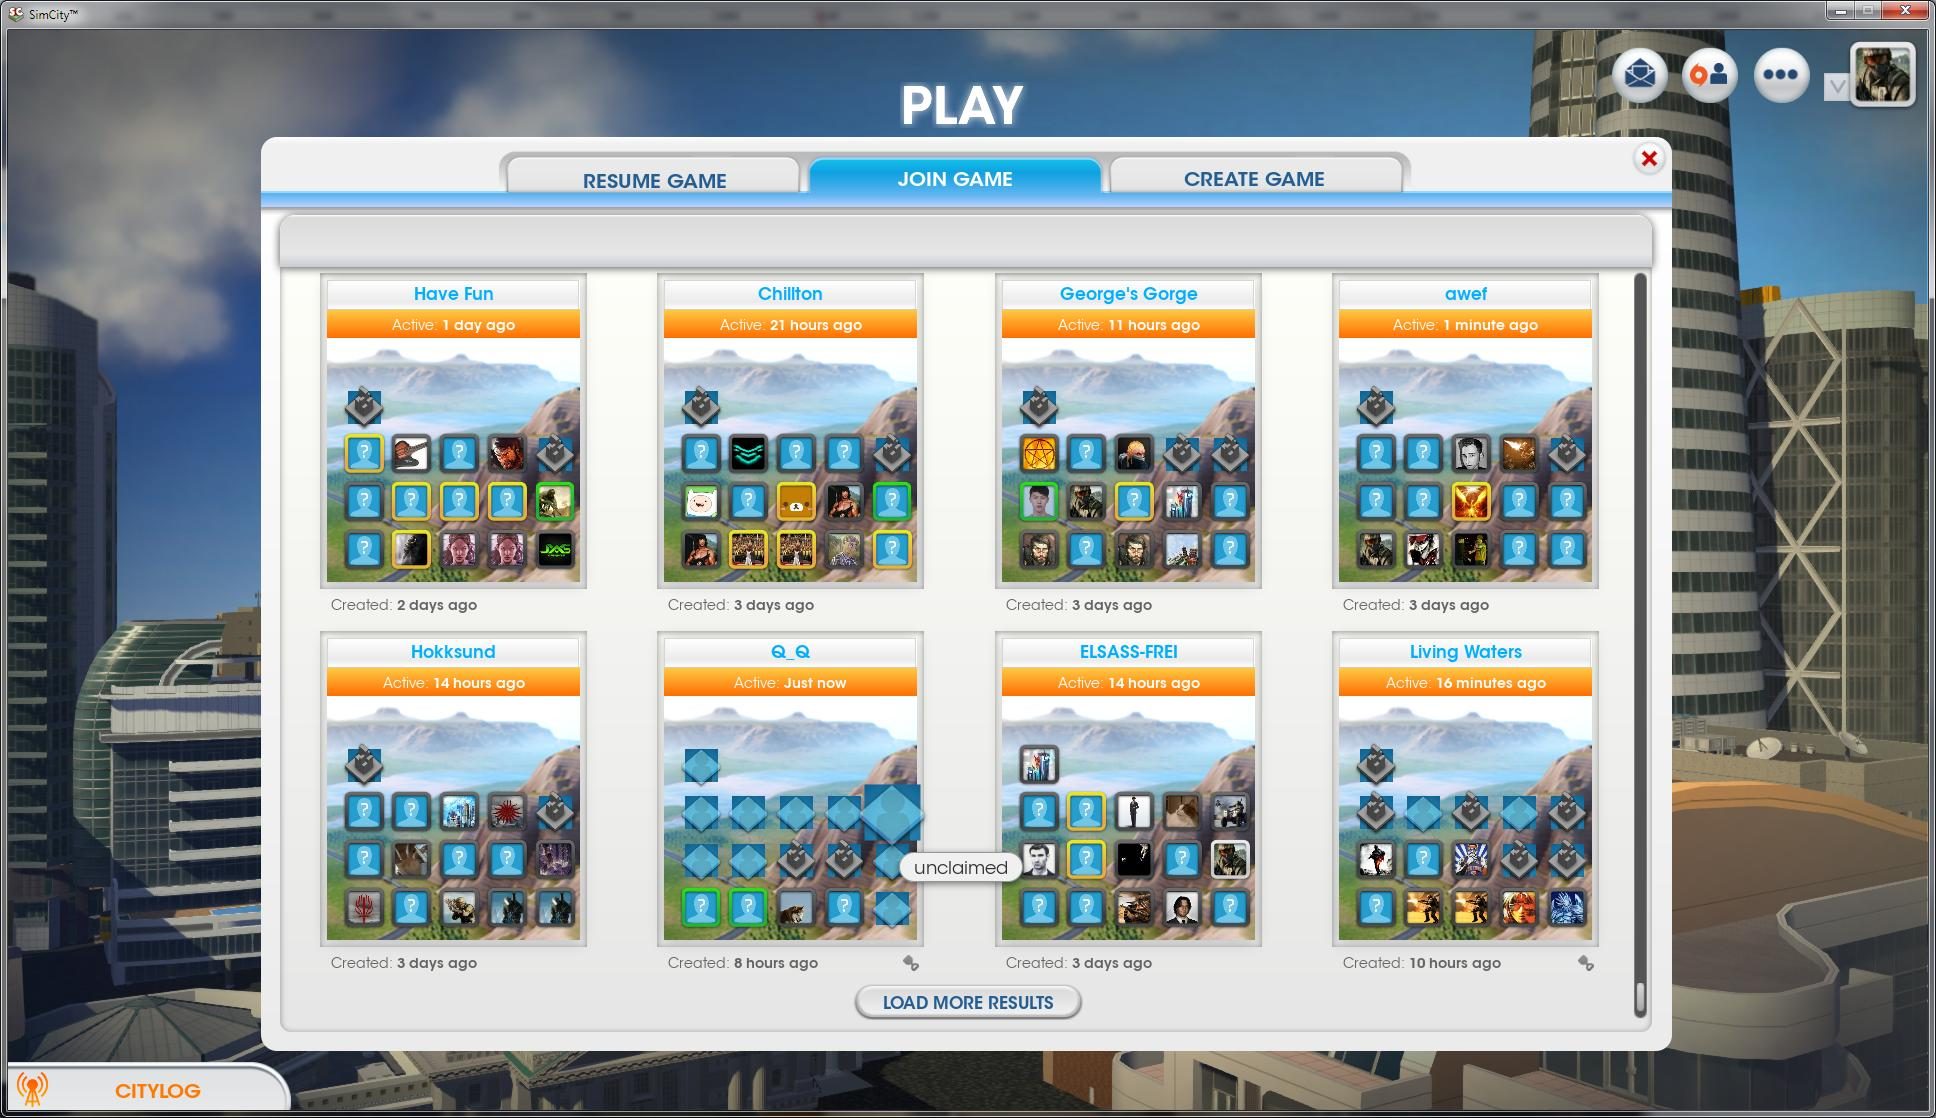 SimCity Mod Shows Abandoned/Unclaimed Cities in Region Selection Menu